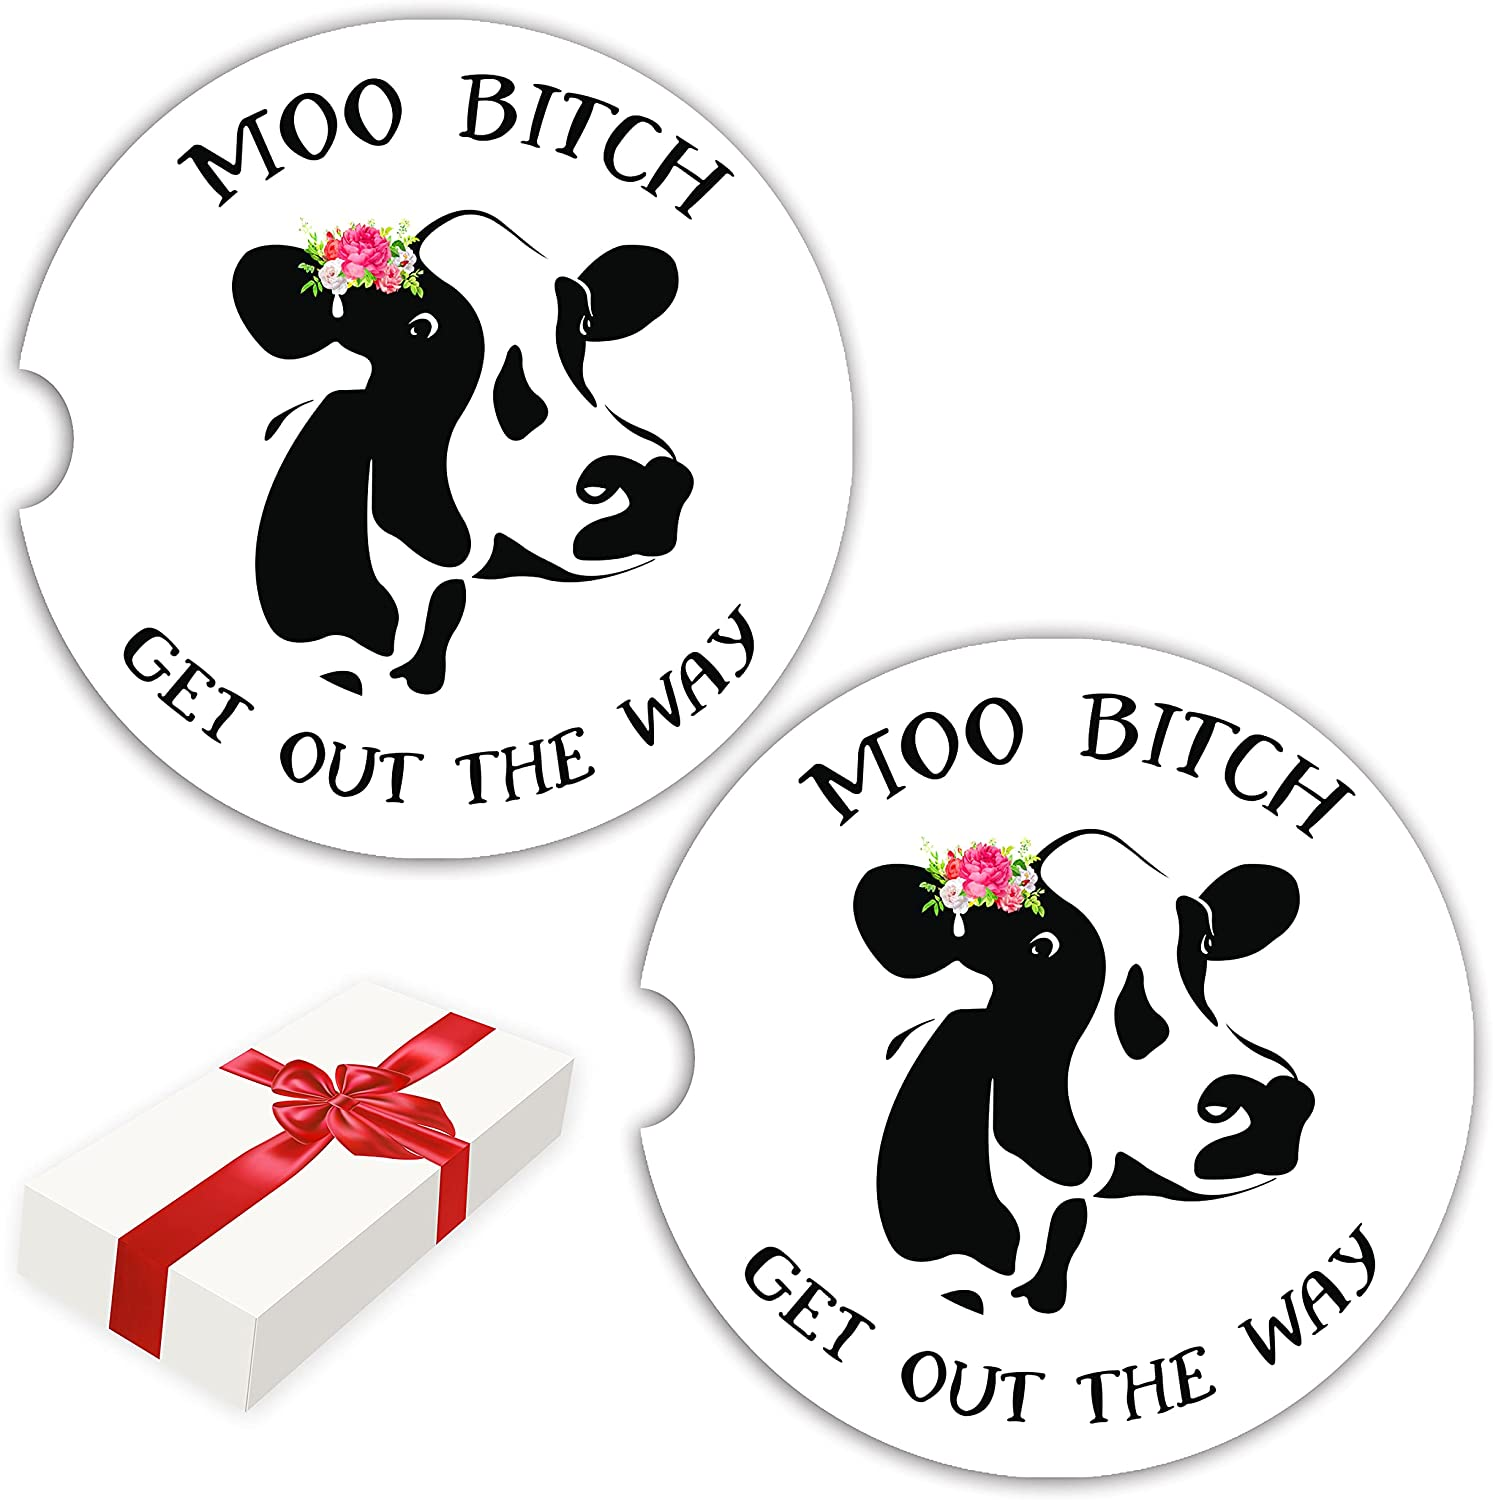 UPNOWPRO Funny Car Coasters for Cup Holders 2 Pack, Cow Print Car Accessories for Women, Farm Animal, Cute Car Cup Holder Coasters, Absorbent Ceramic Car Coaster to Keep Cupholder Clean with Cork Base